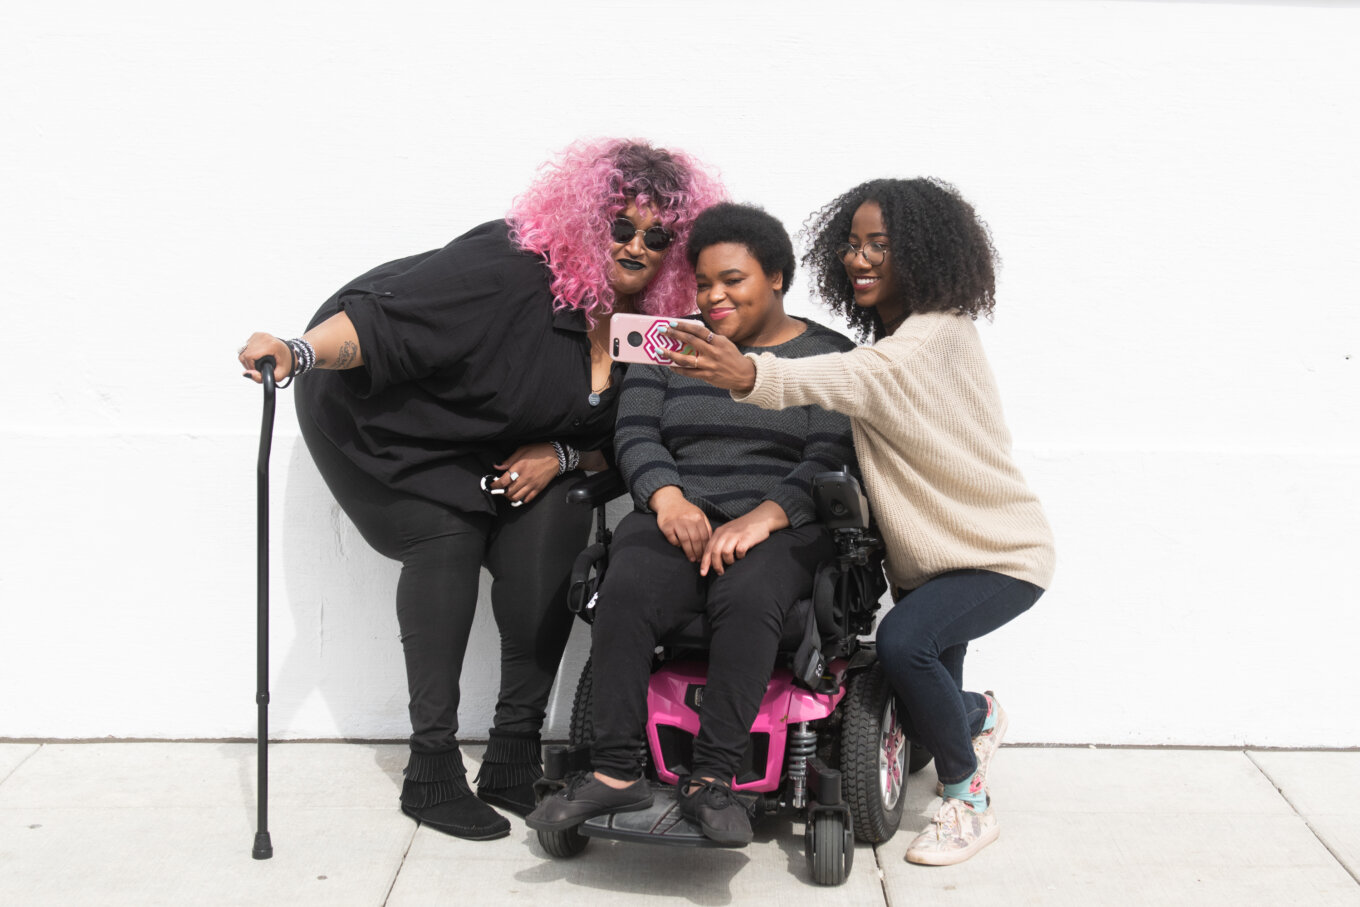 A zoomed out full body shot showing three Black and disabled friends (a non-binary person with a cane and tangle stim toy, a non-binary person sitting in a power wheelchair, and an invisibly disabled woman) smiling and taking a cell phone selfie together